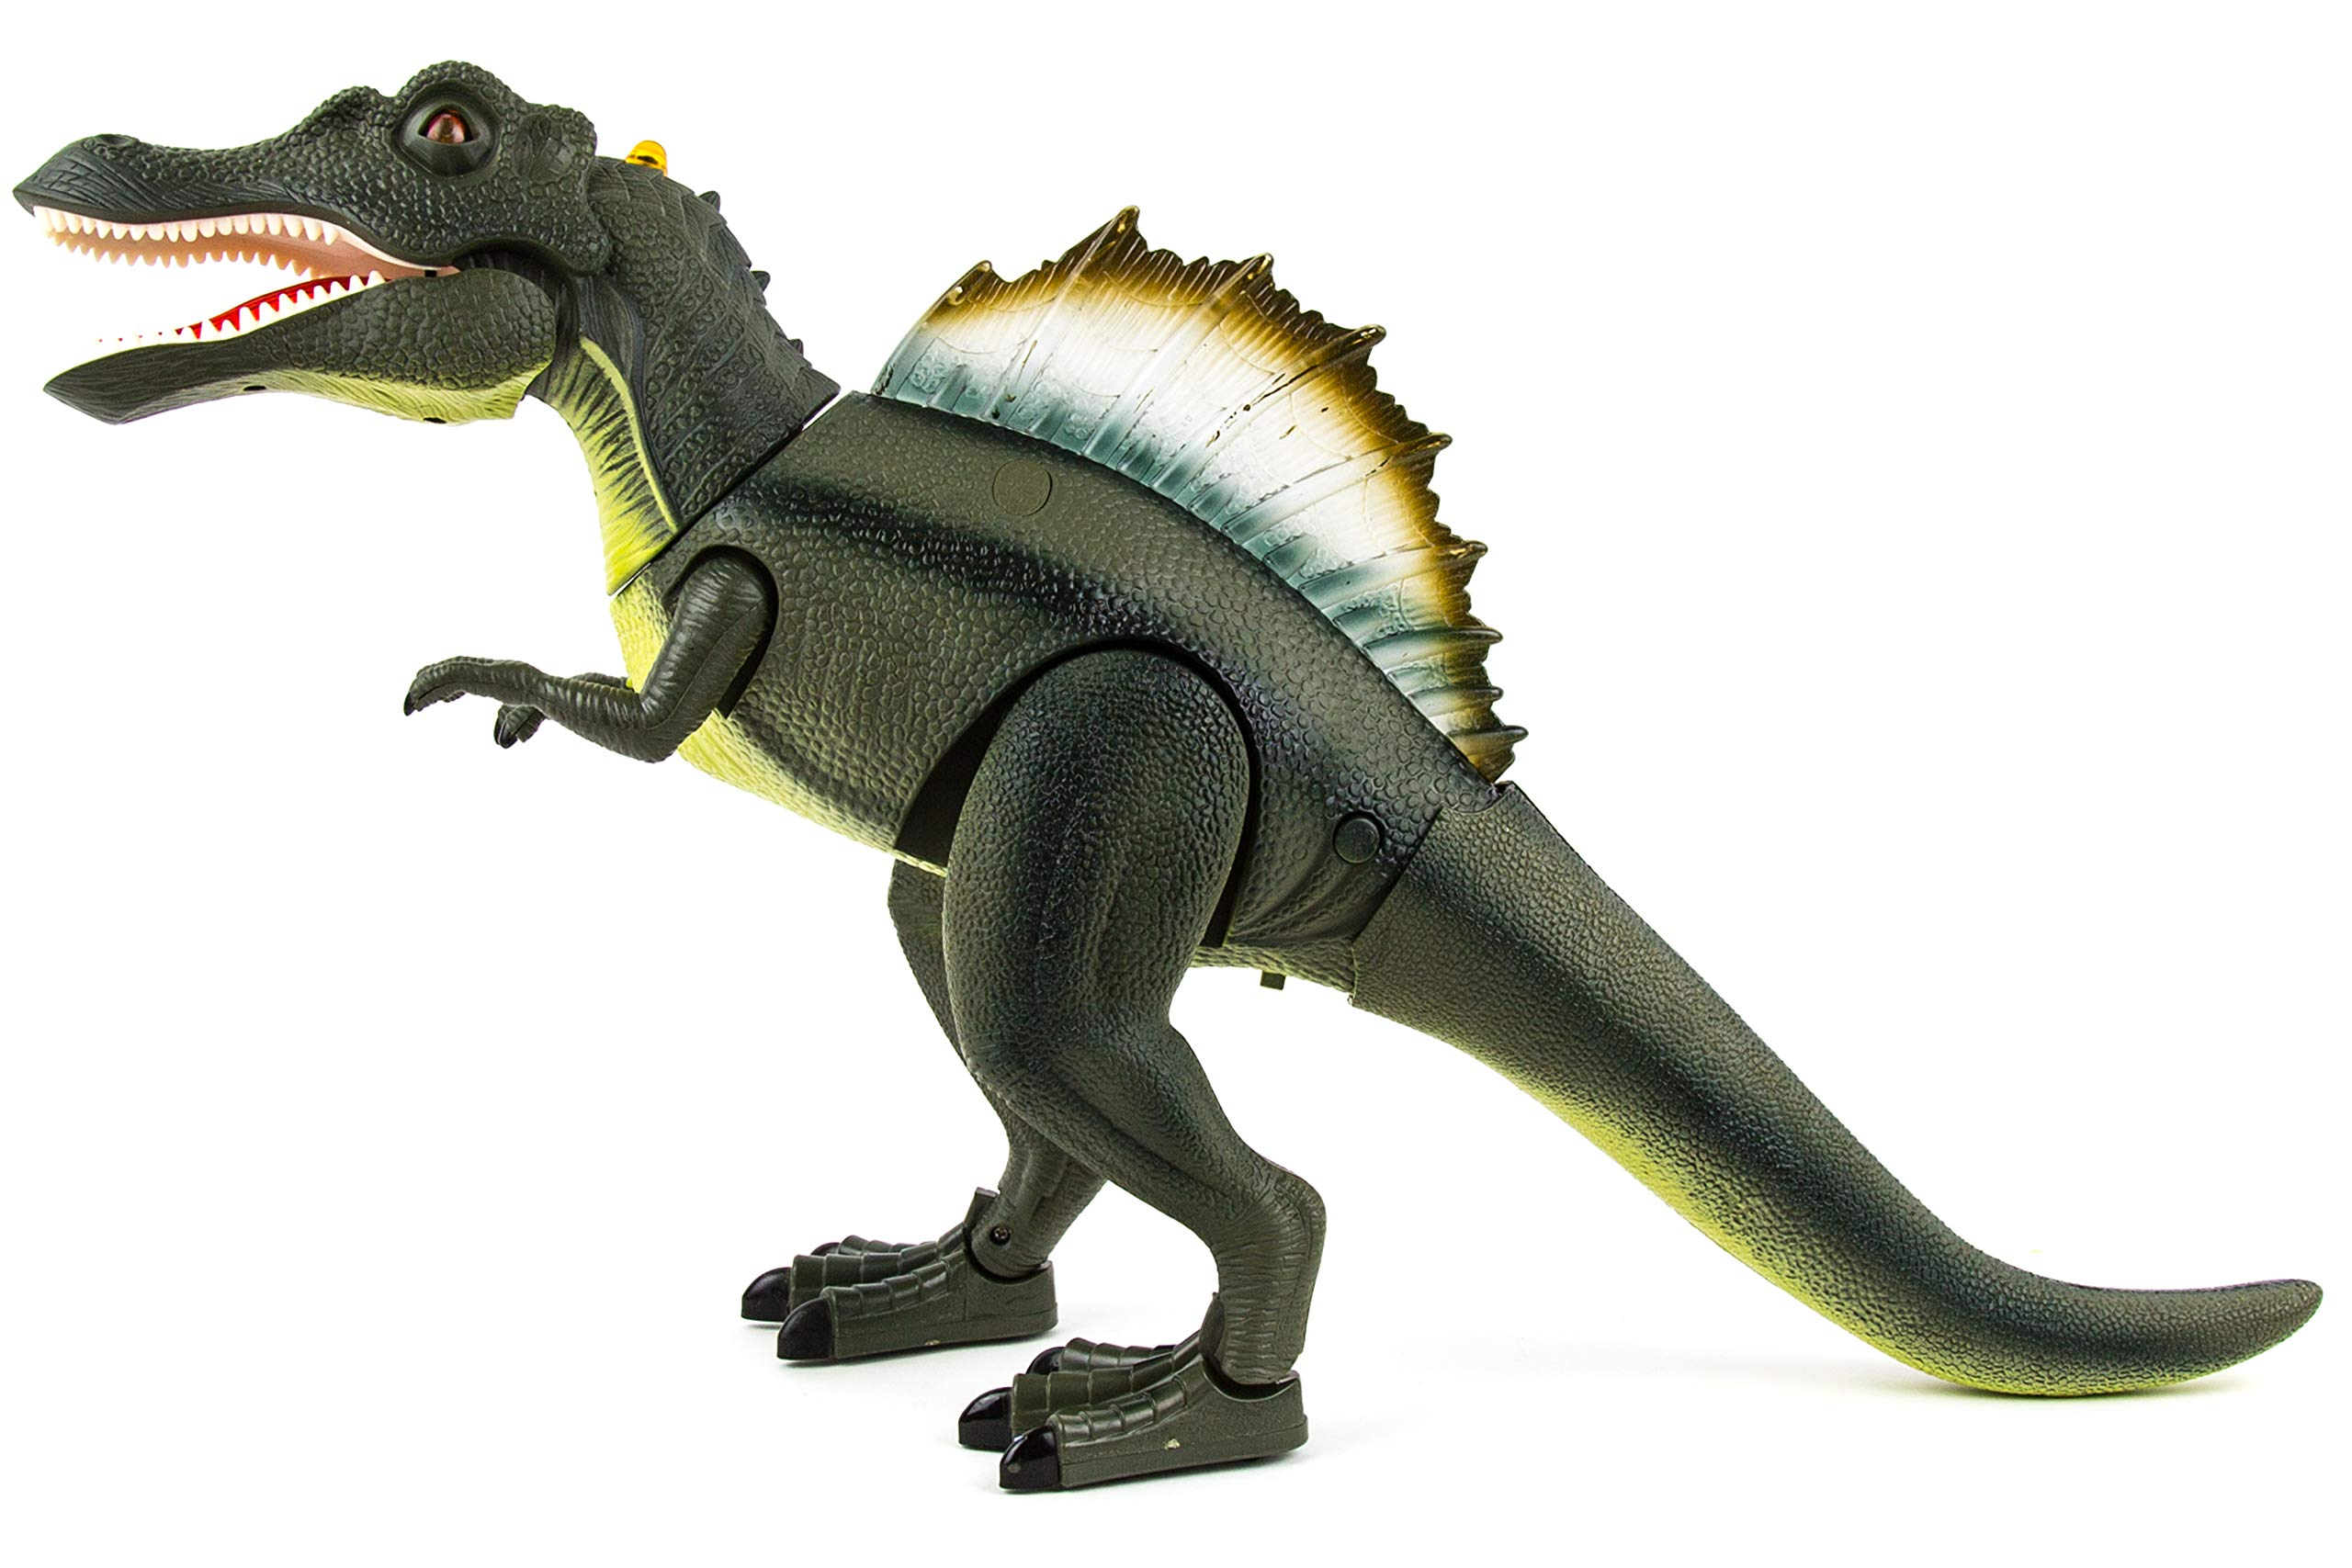 Toysery Remote Control Dinosaur Toy for Kids | RC Walking Realistic Dinosaur | Toy Roars, Lights & Sounds | Fast Forward Function | Ultimate Fun for Kids by Toysery (Image #4)